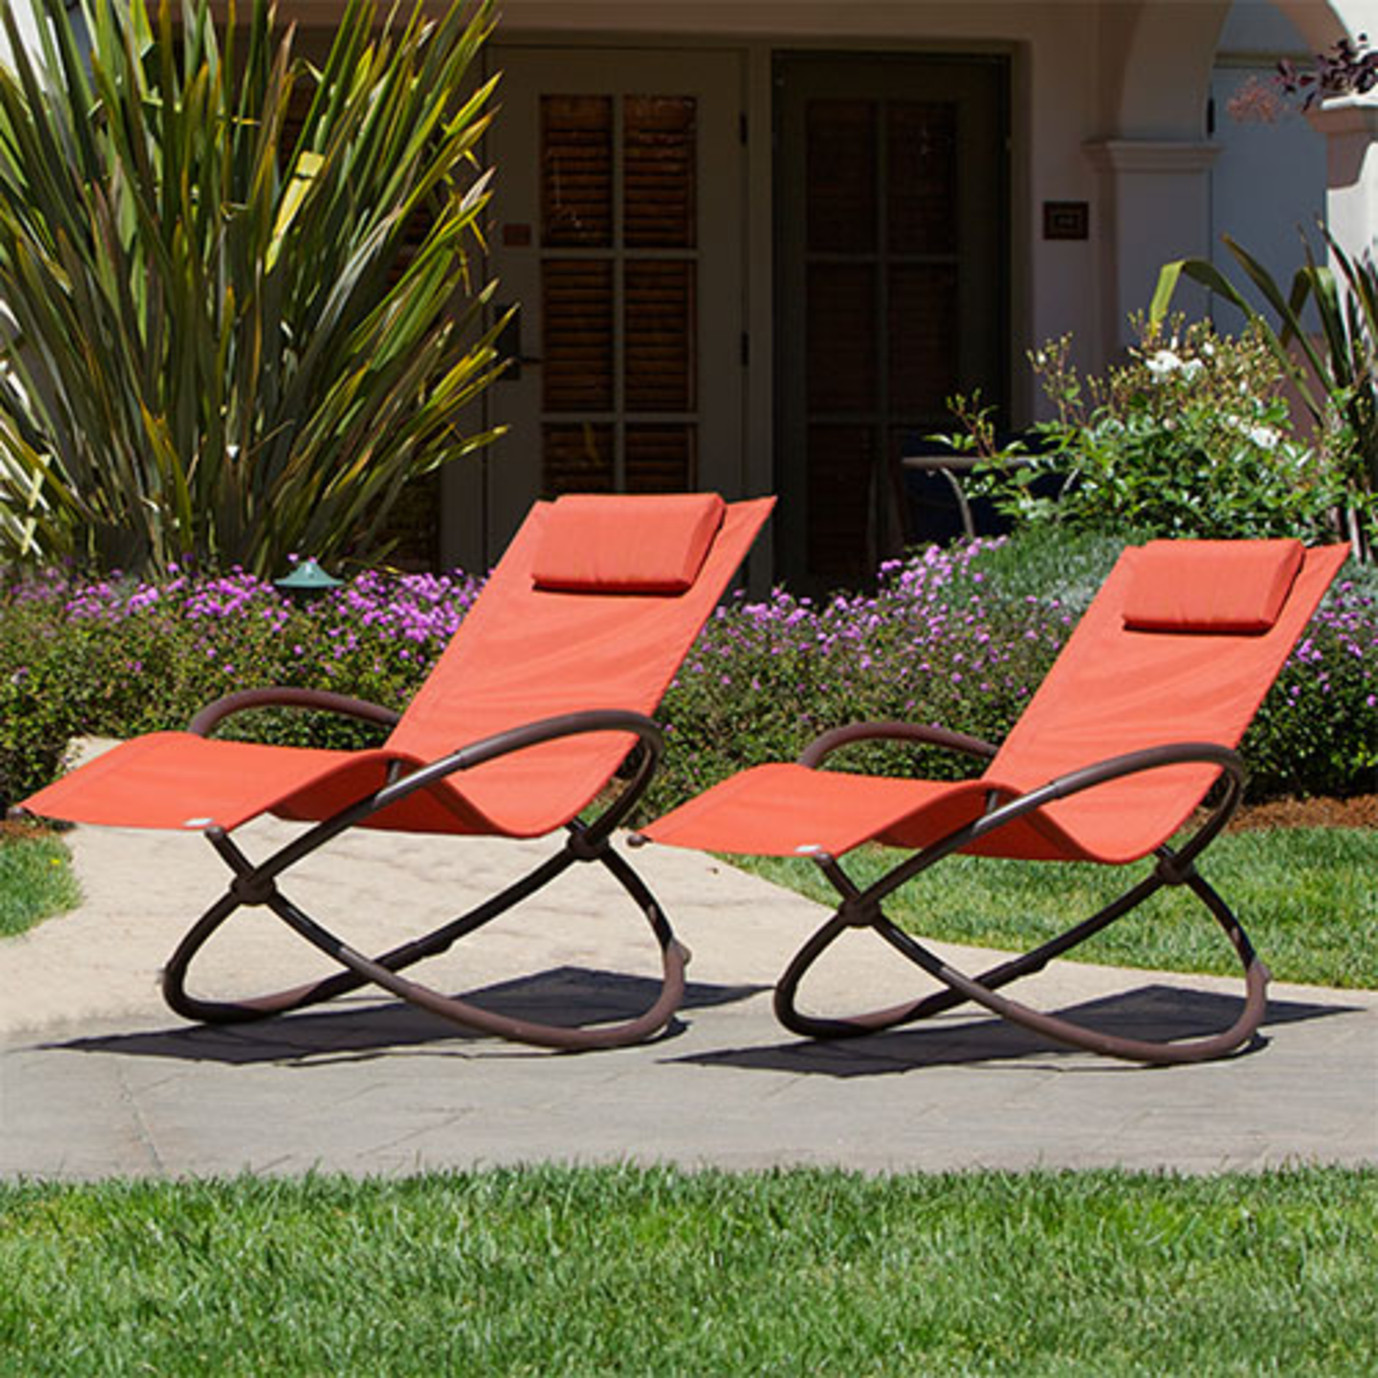 Original Orbital Outdoor Loungers 2pk - Poppy Orange